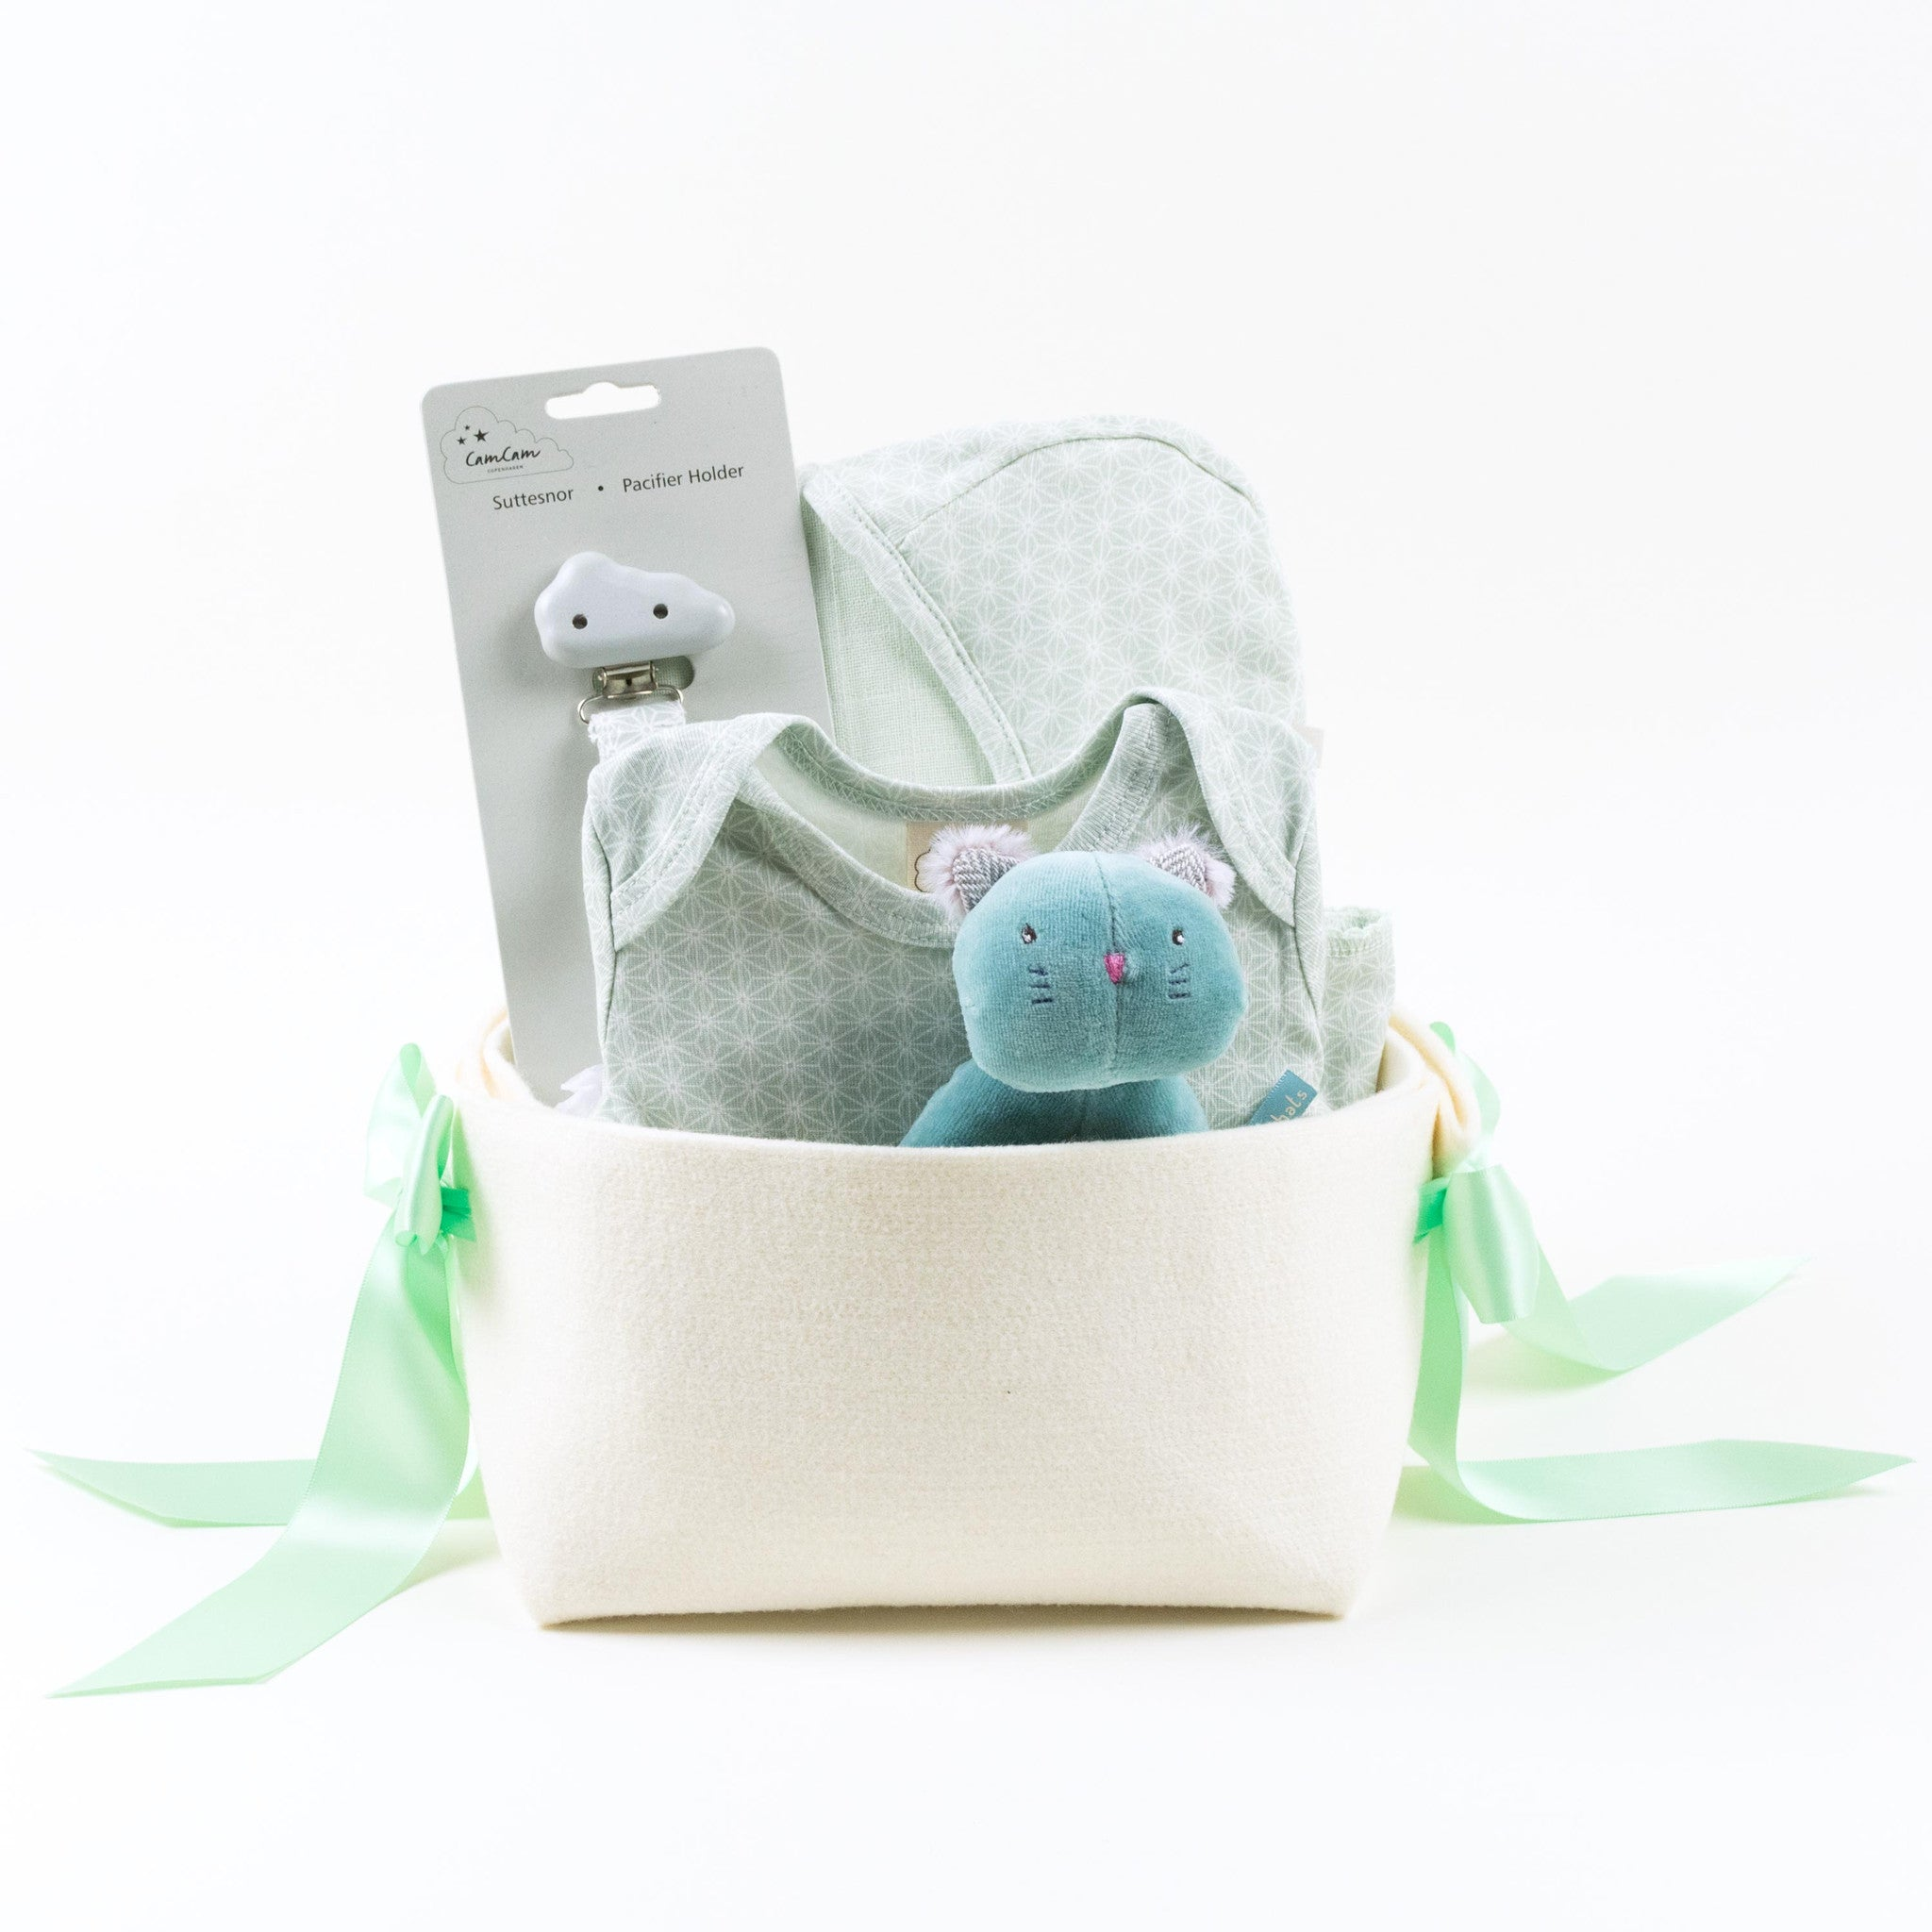 Welcome Home Baby Gift Basket in organic cotton by Bonjour Baby Baskets